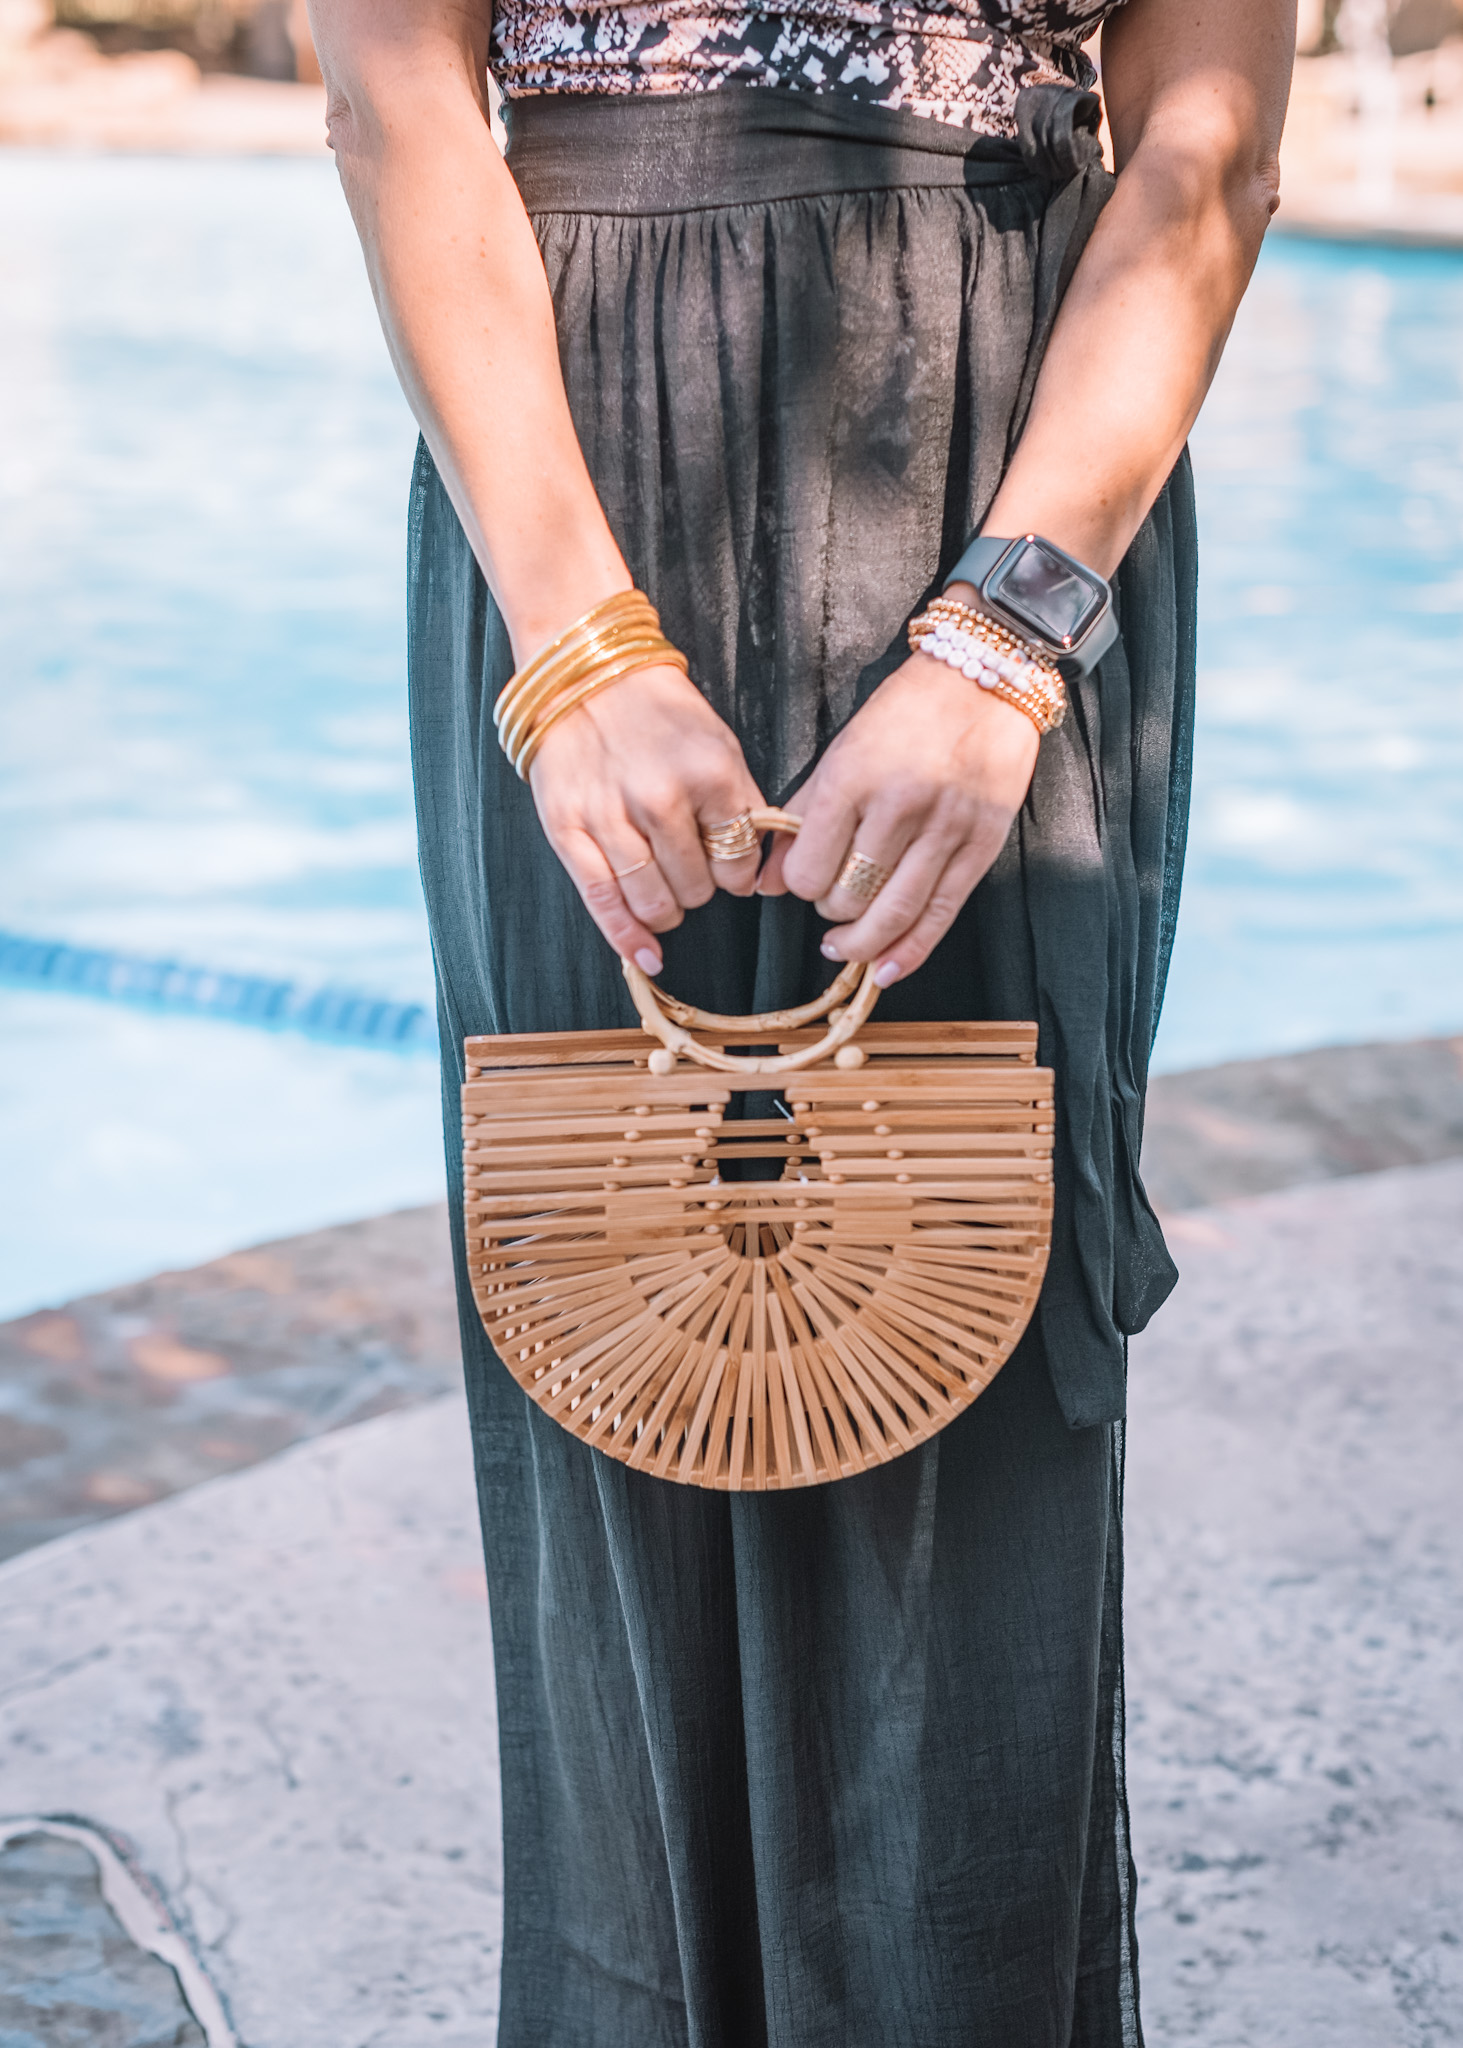 Amazon Fashion Faves, Snake print Swimsuit, Sarong, Bamboo Hand Bag, Gold Bangles